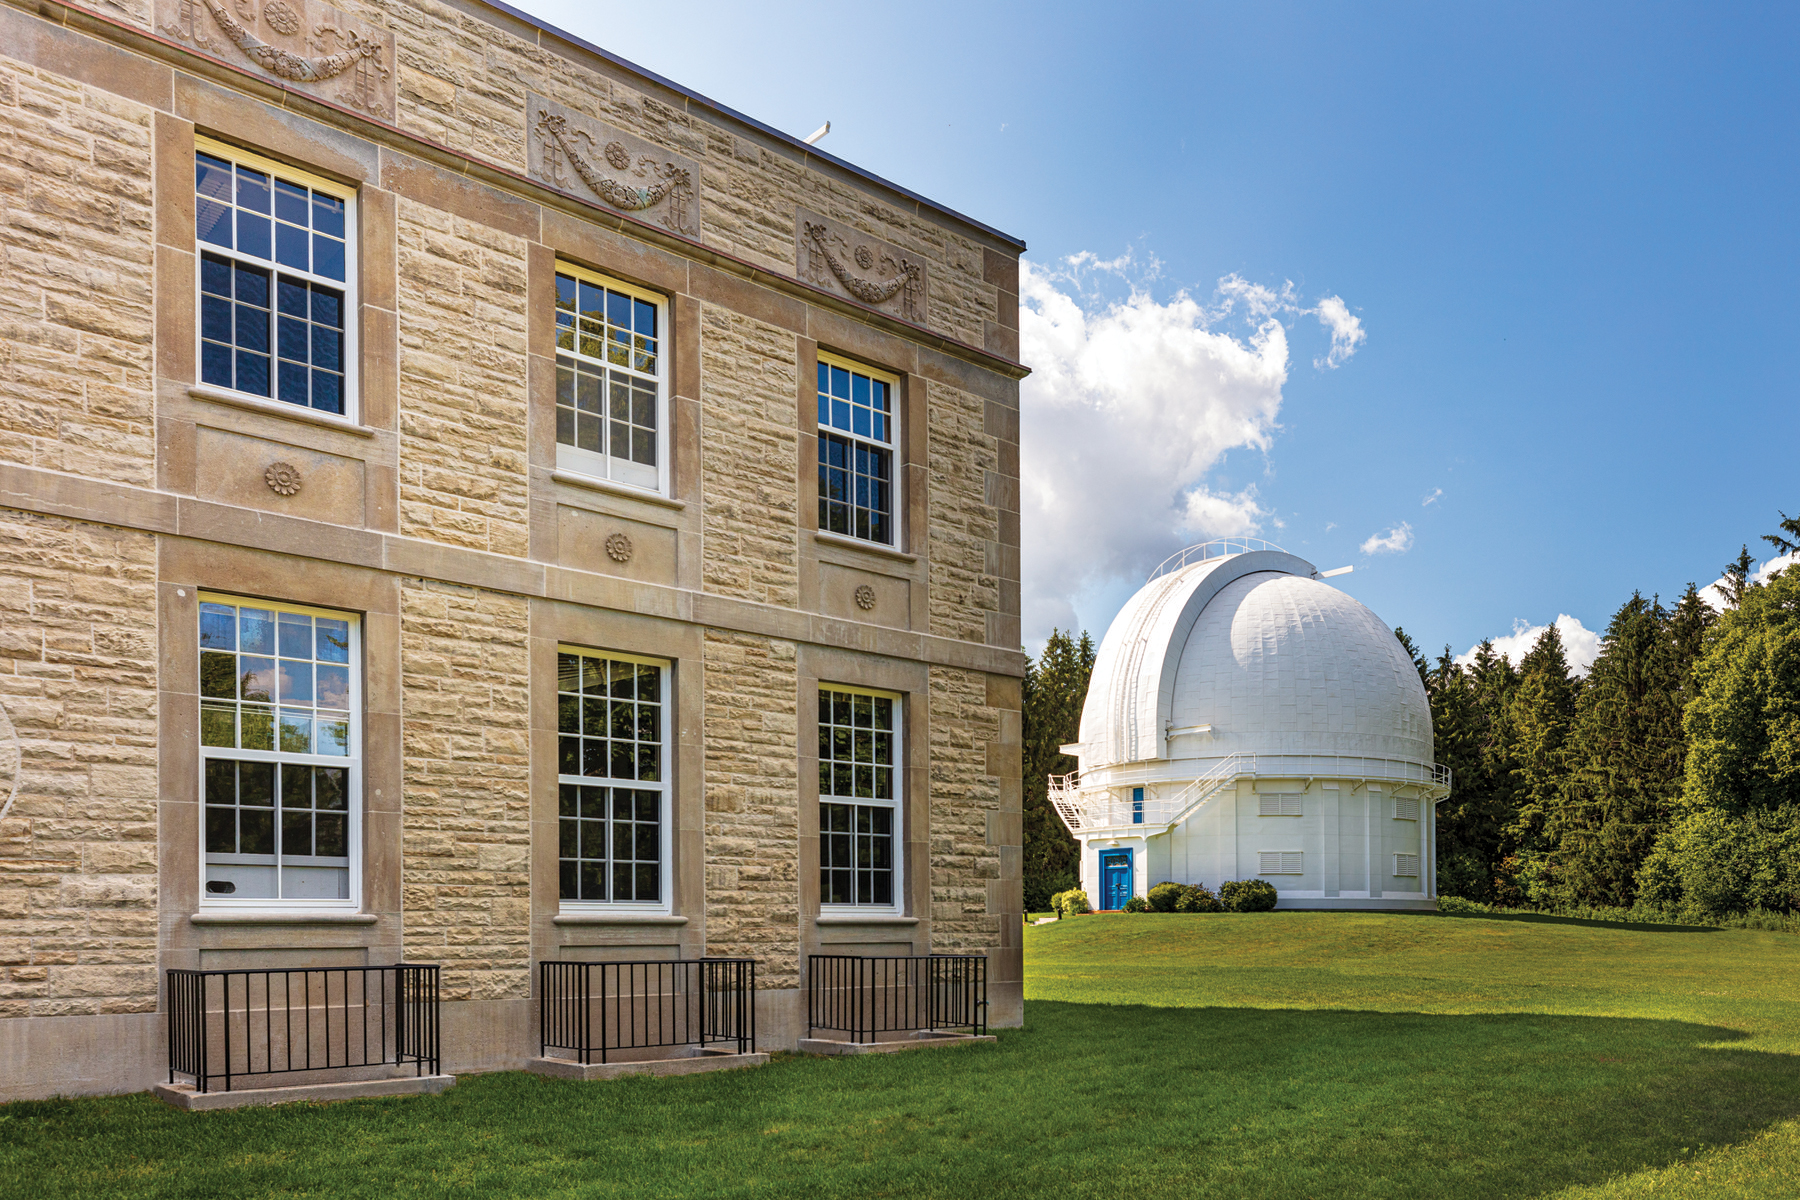 View of white observatory with blue door from behind two-storey Administration Building